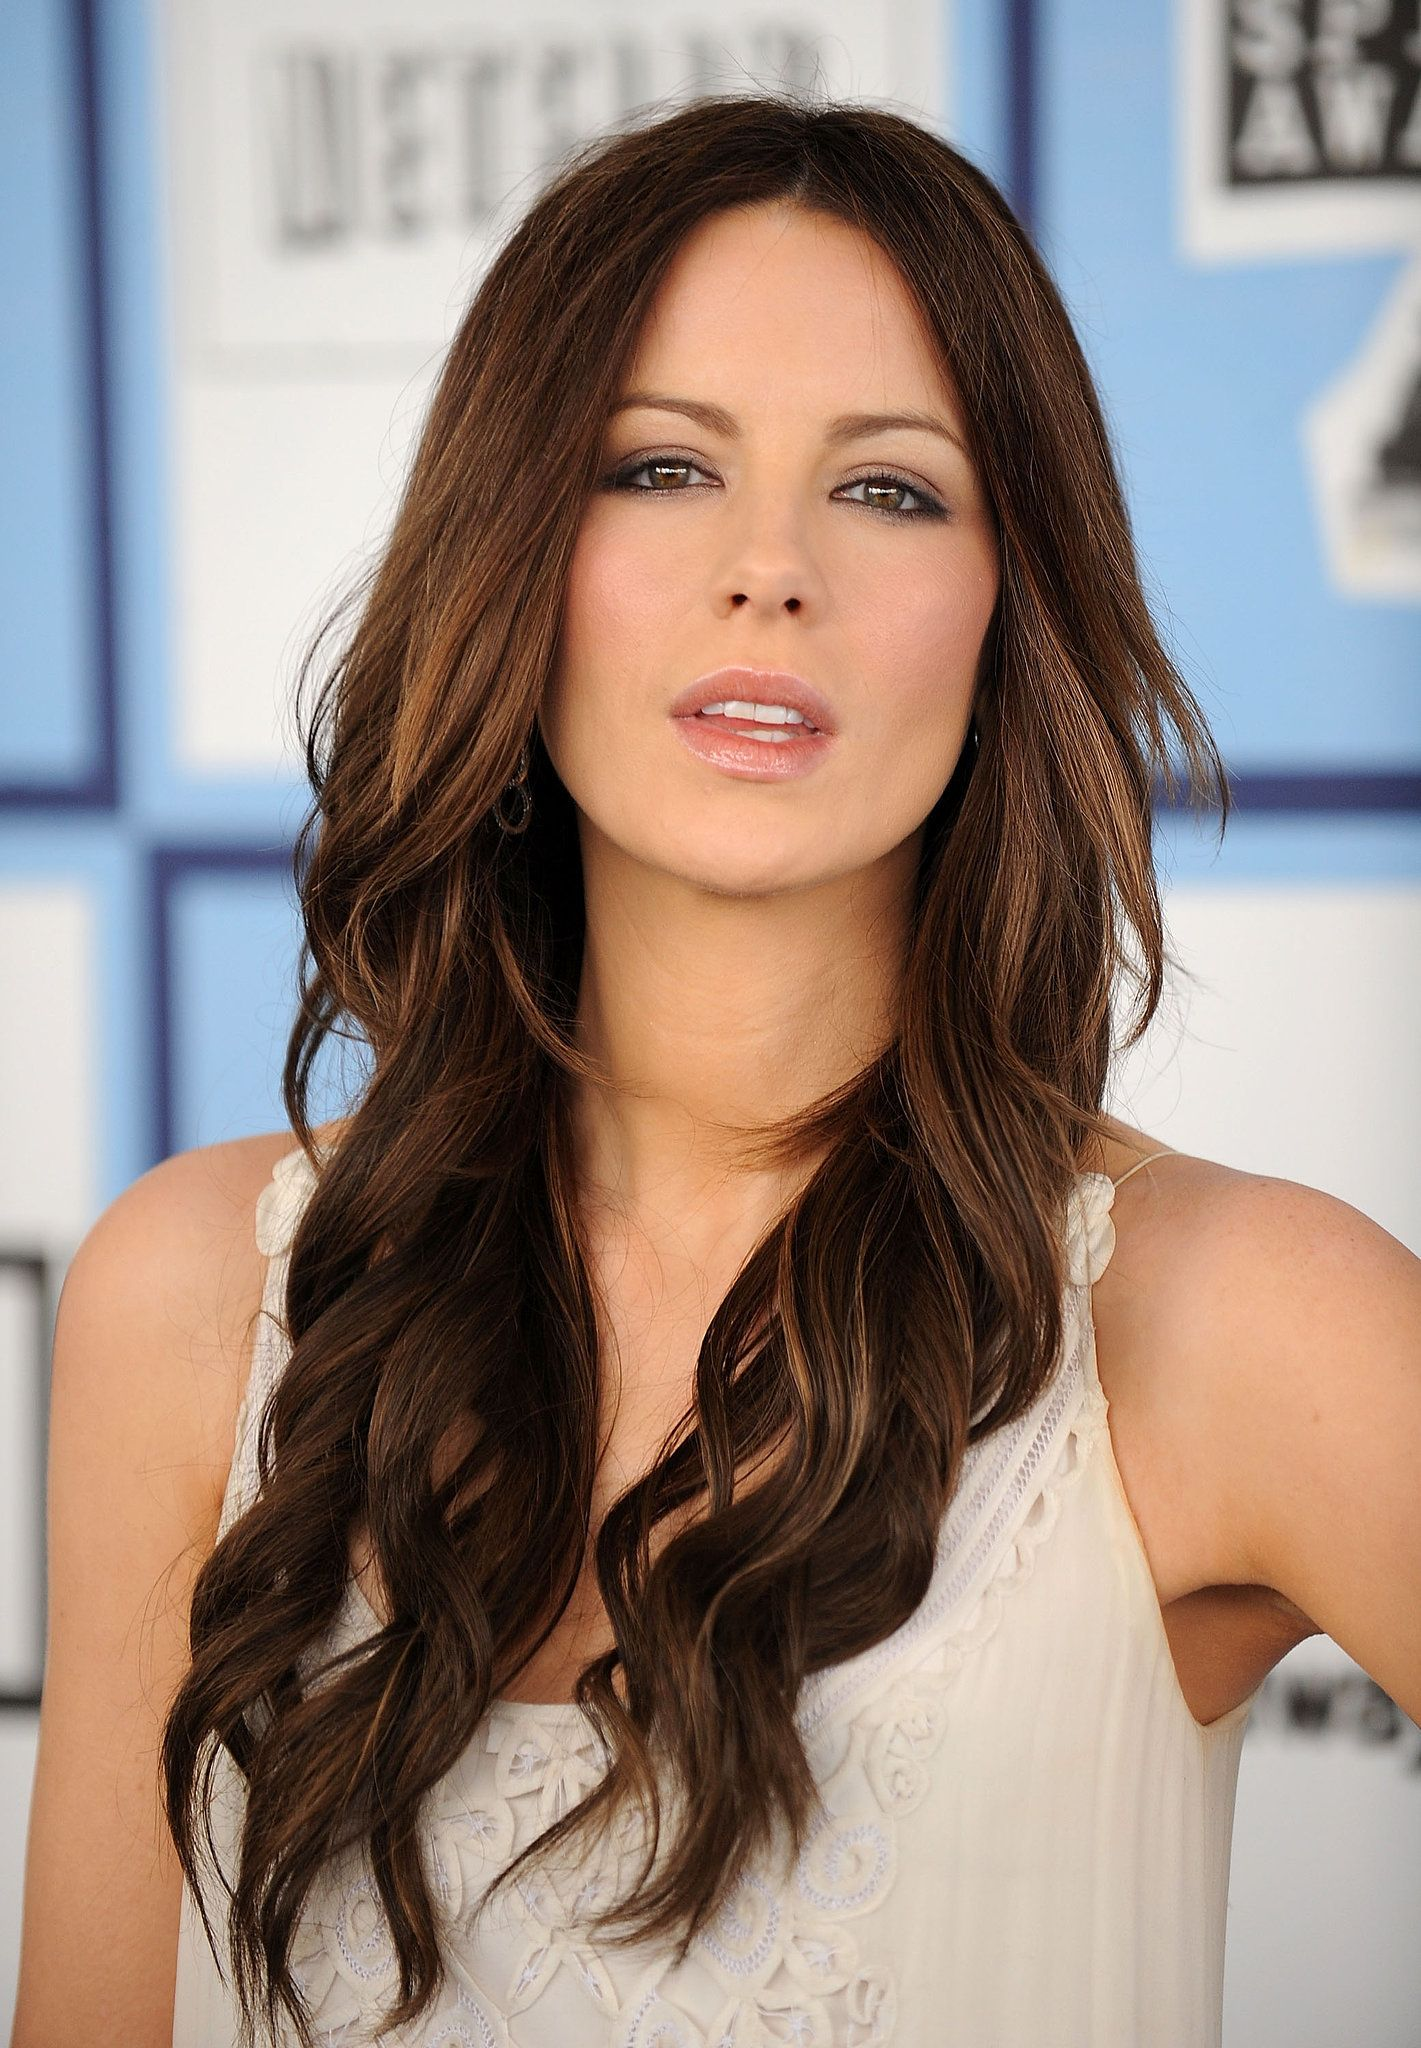 Celebrity Hairstyles: Kate Beckinsale Hairstyles Celebrity Hairstyles: Kate Beckinsale Hairstyles new pictures